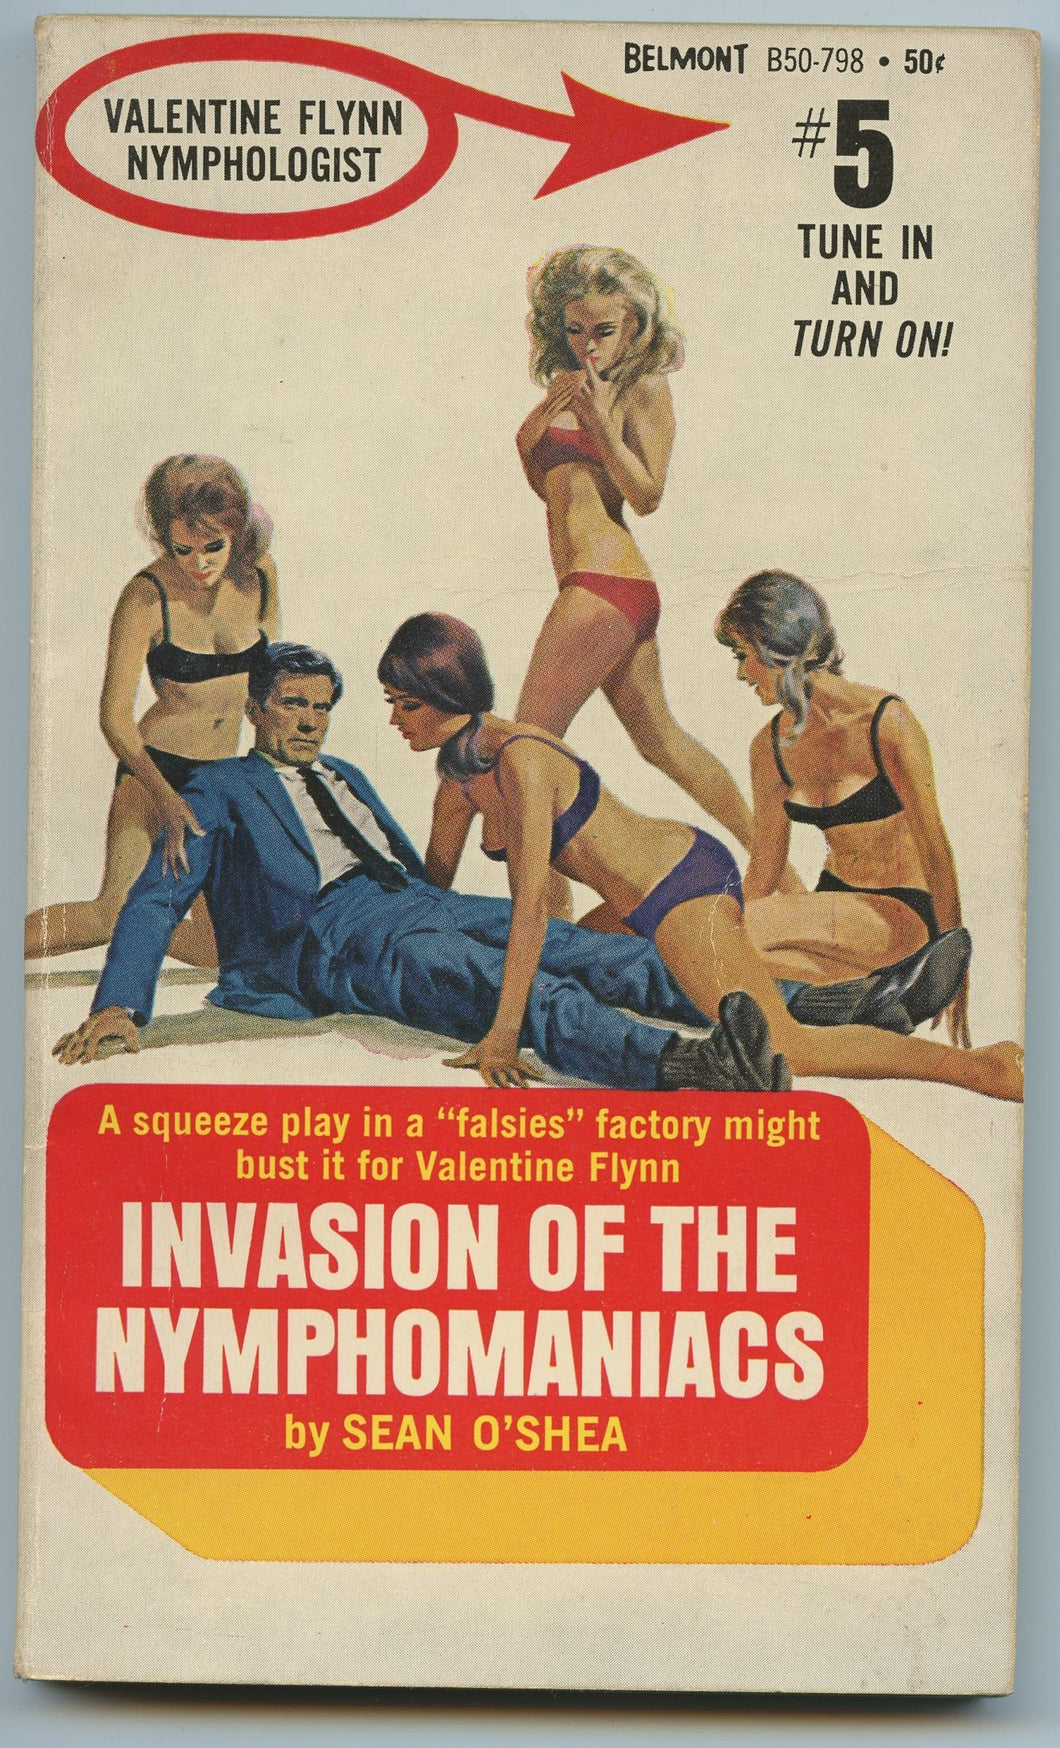 Invasion of the Nymphomaniacs